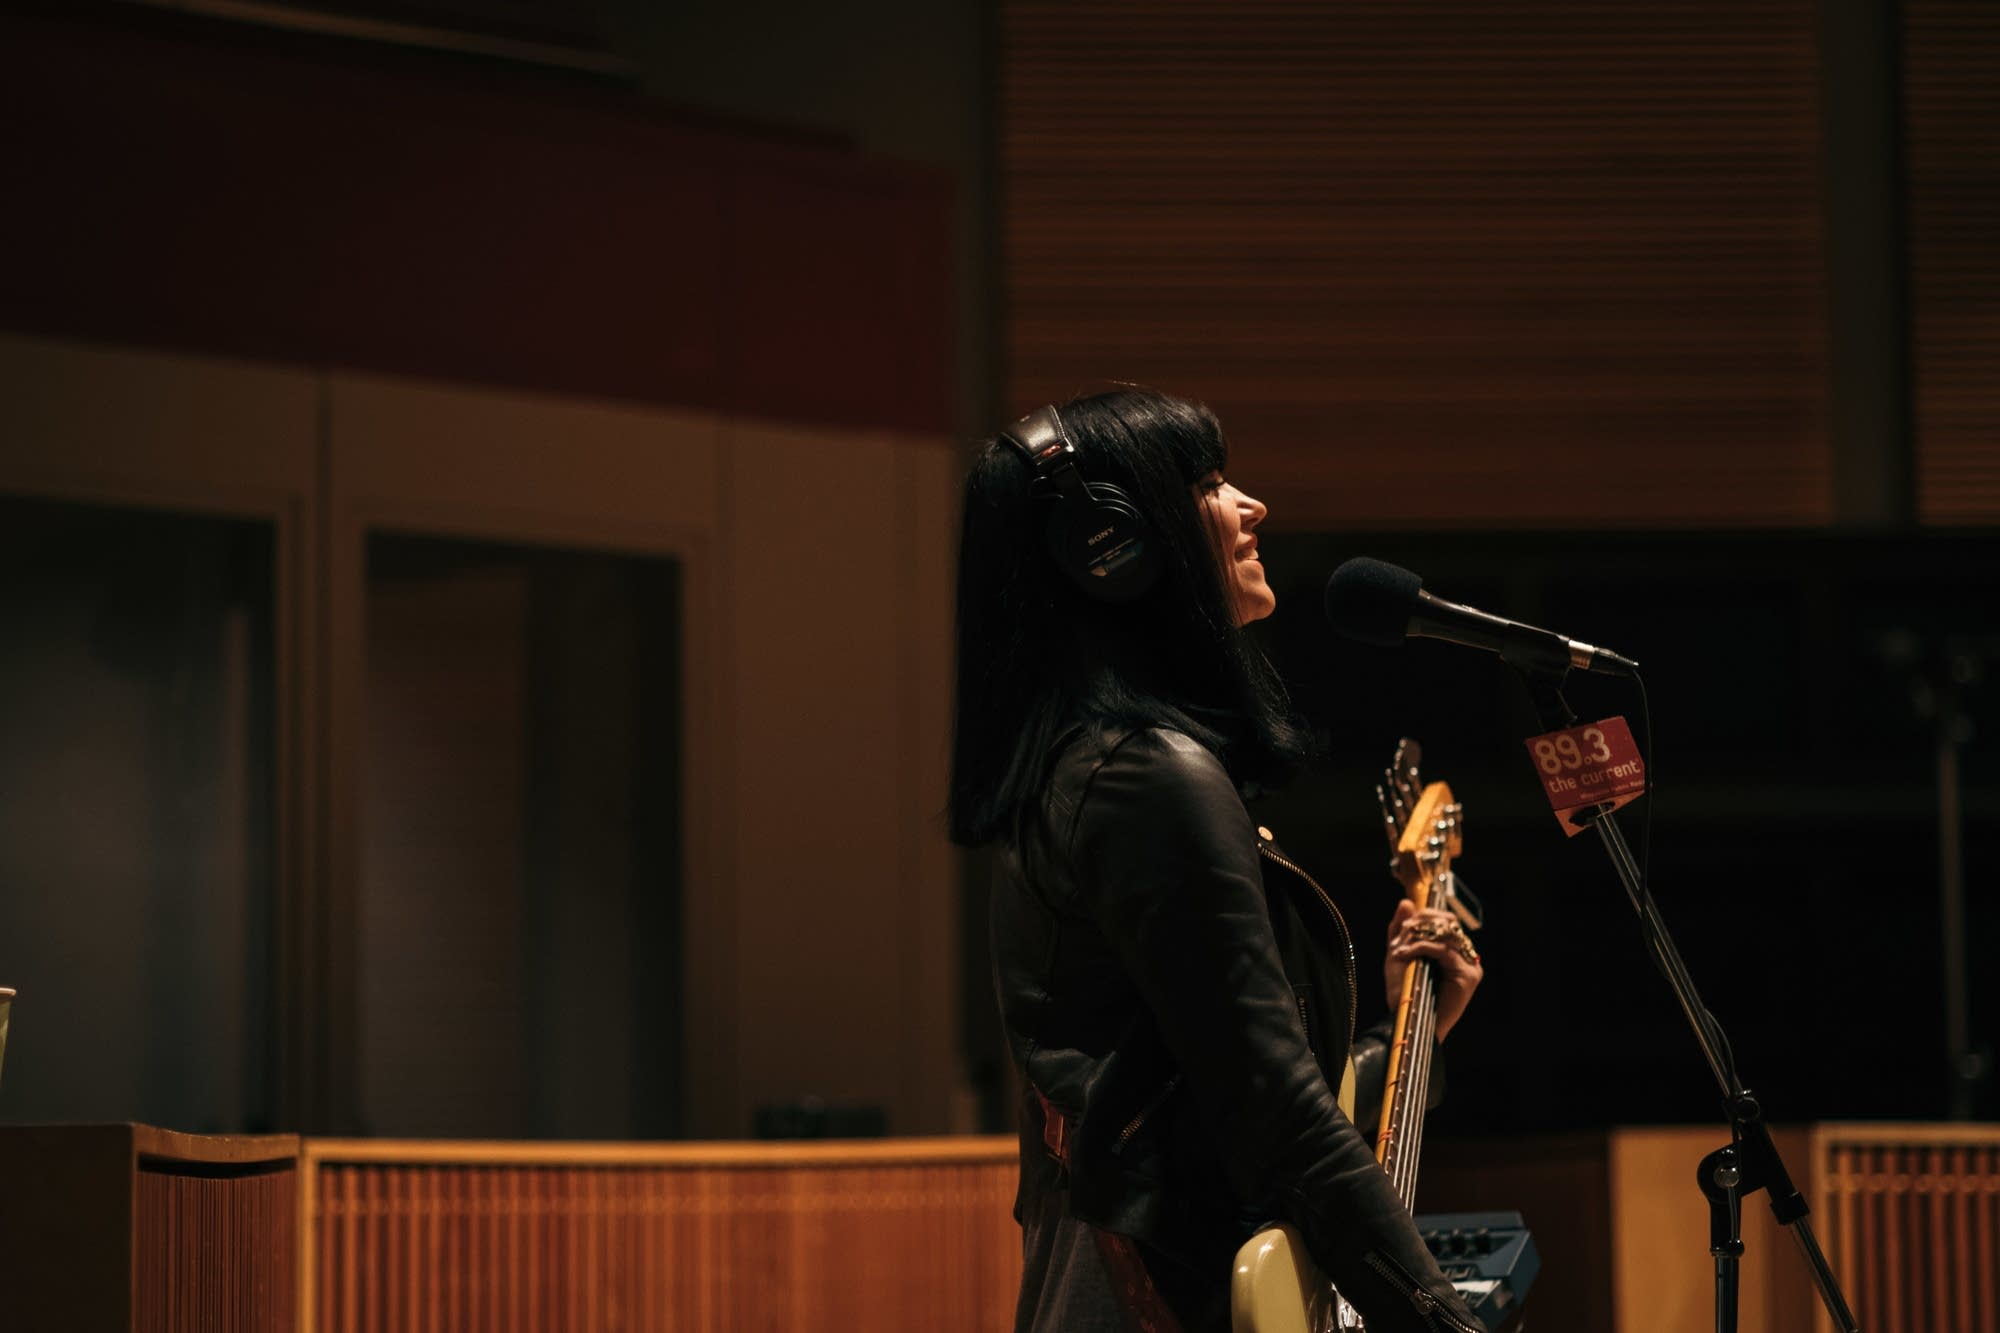 Khruangbin perform in The Current studio